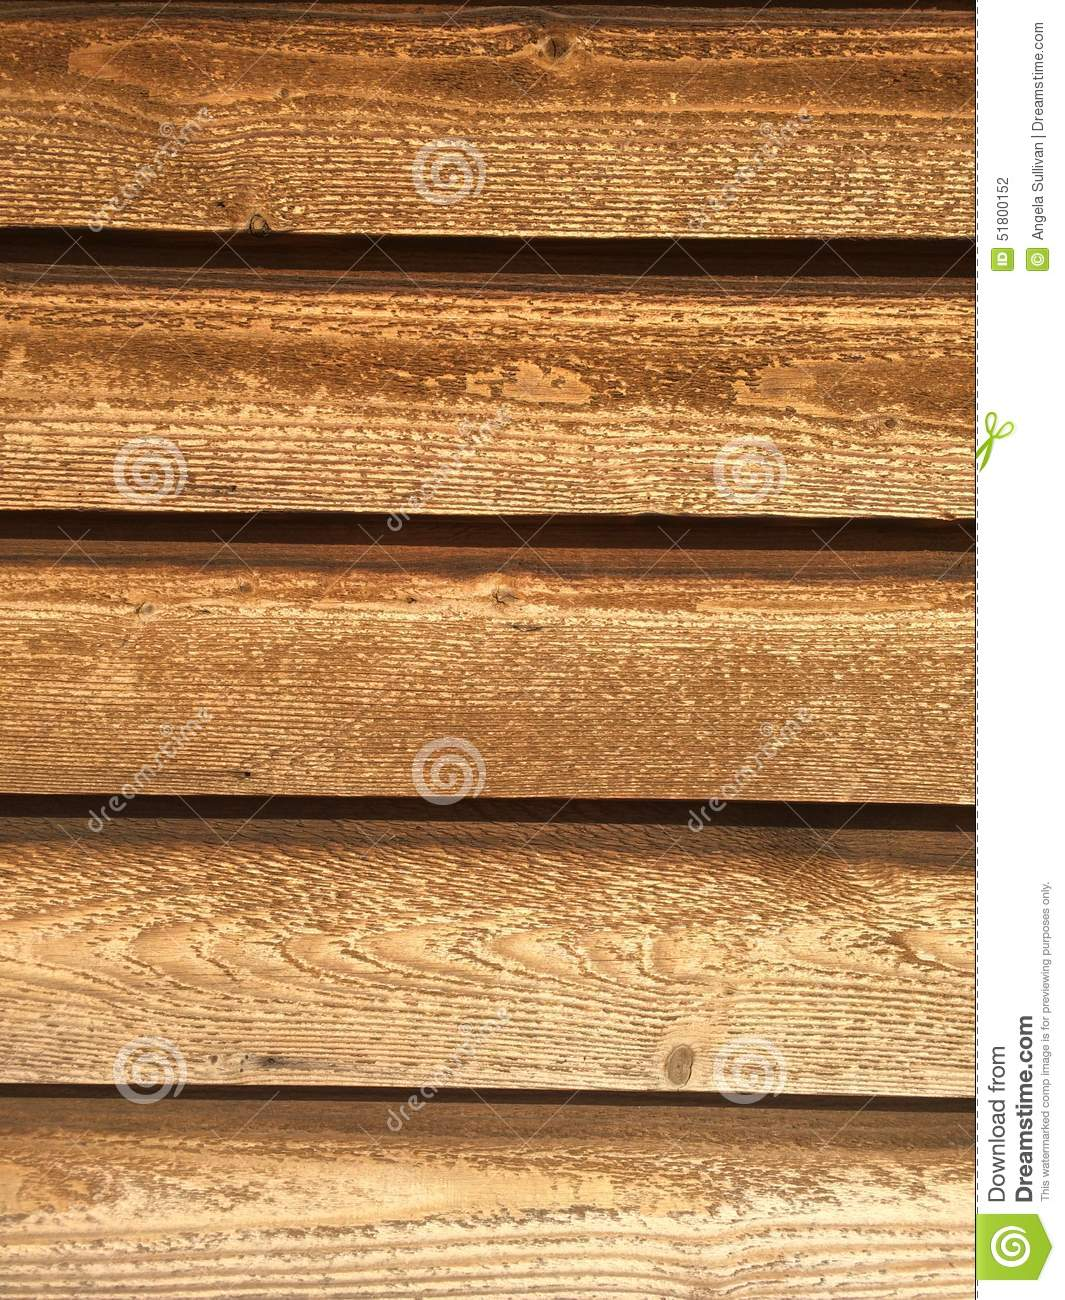 Barn Wood Slats Stock Photo Image 51800152